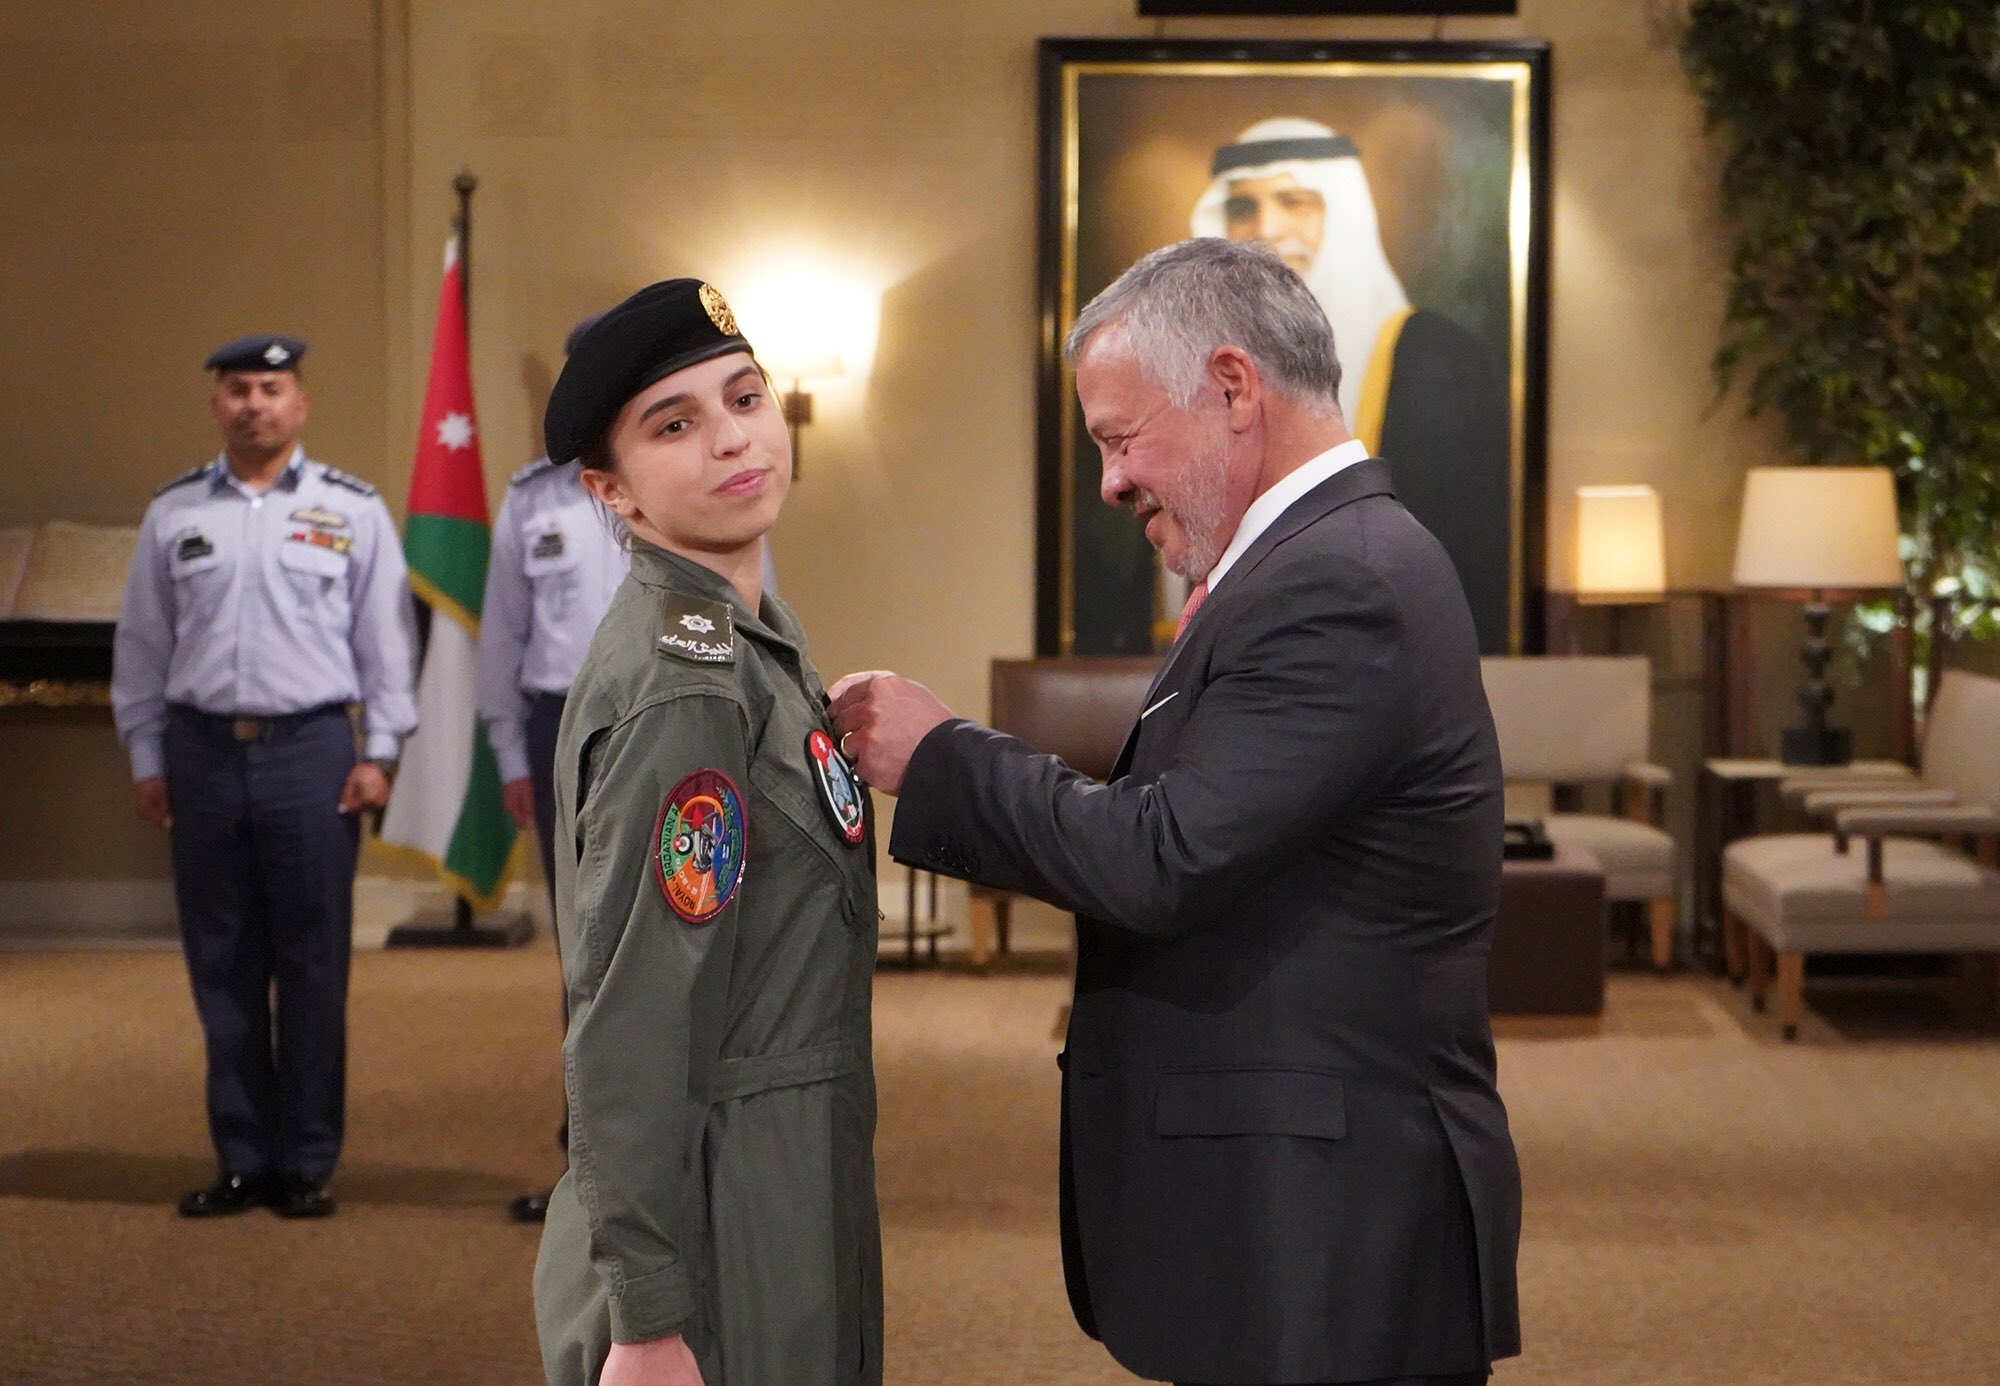 Jordanian Princess Becomes Her Country's First Female Pilot